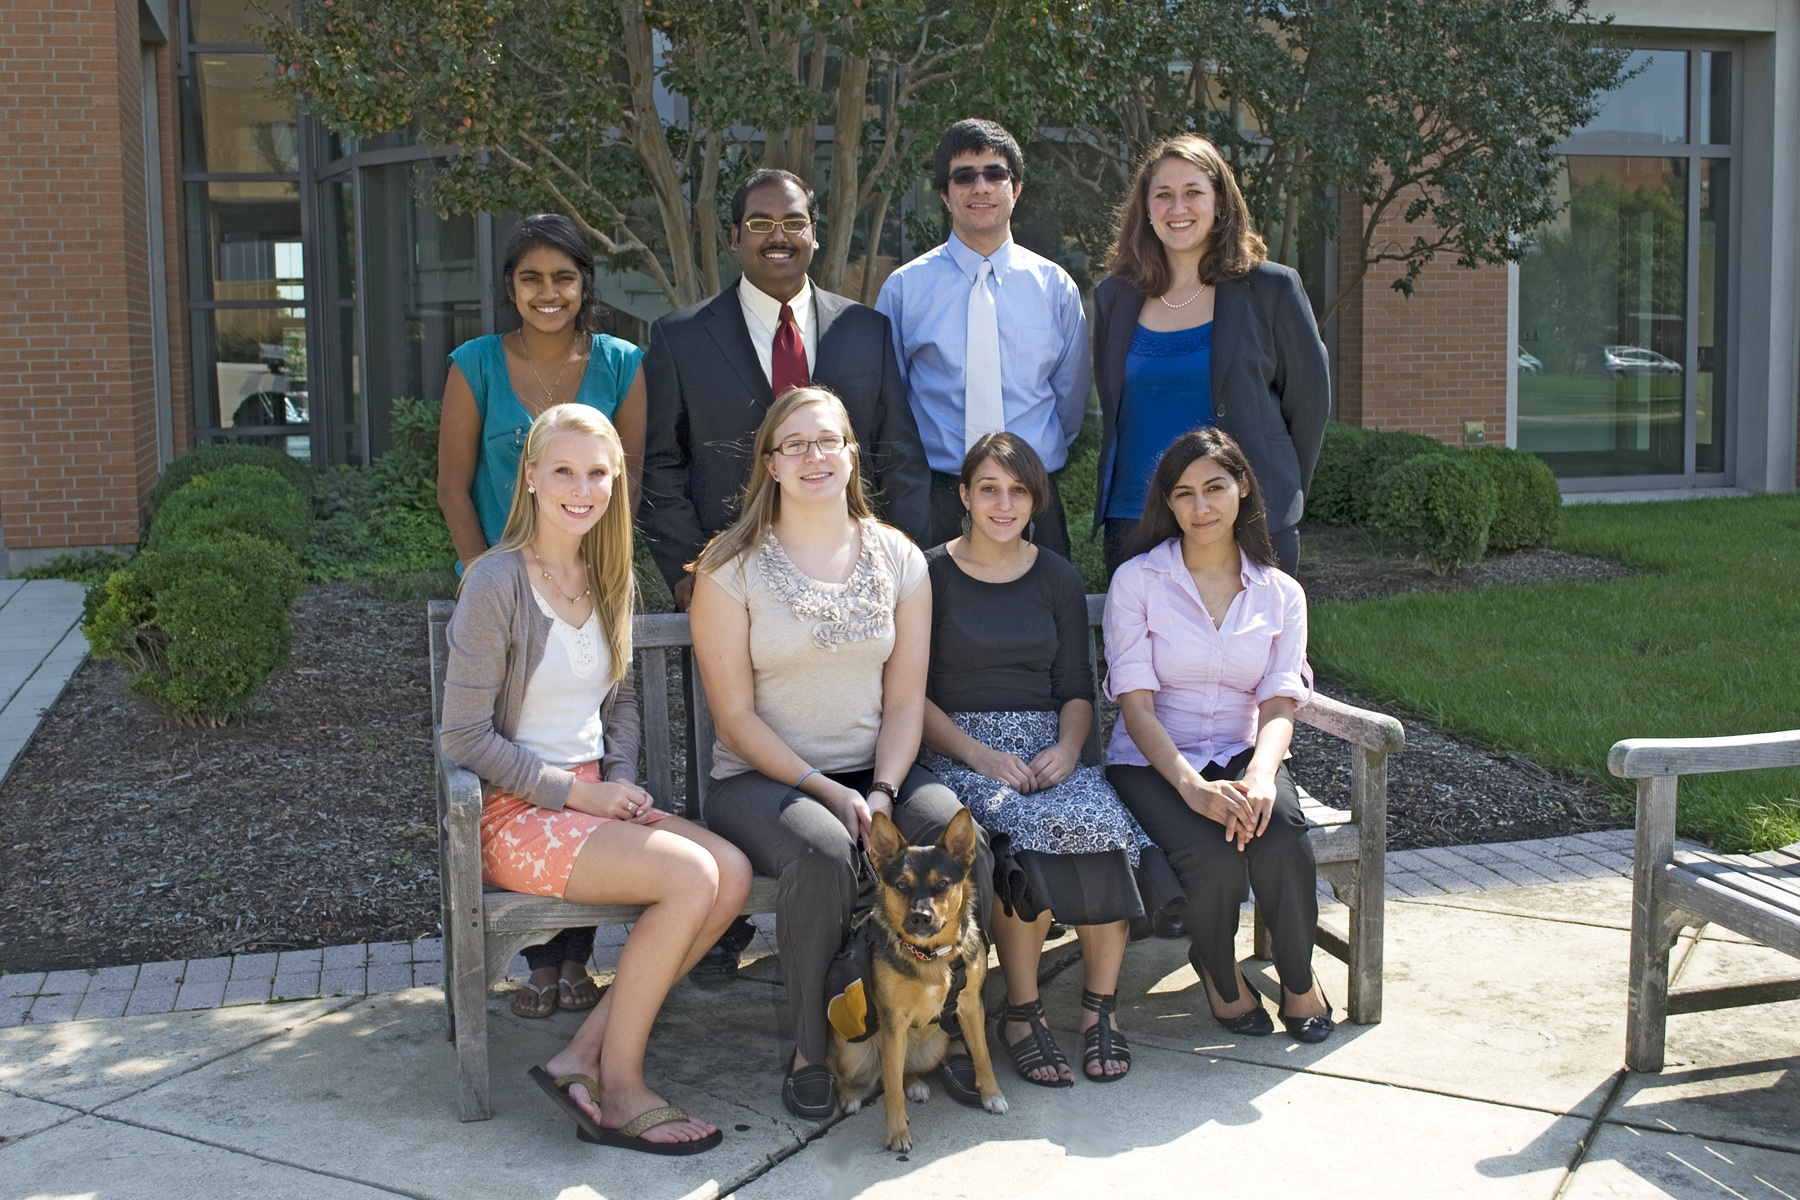 2011-2012 France-Merrick Scholarship Cohort 2011-2012 France-Merrick Scholarship Cohort. Front row, from left to right: Stephanie Pully, Amy Poole with her Service Dog Honey, Kelly Cyr, and Aleeza Abbasi. Back row: Revathi Chandry, Gift Jayakar, Salar Khaleghzadegan, and Lori Hardesty.